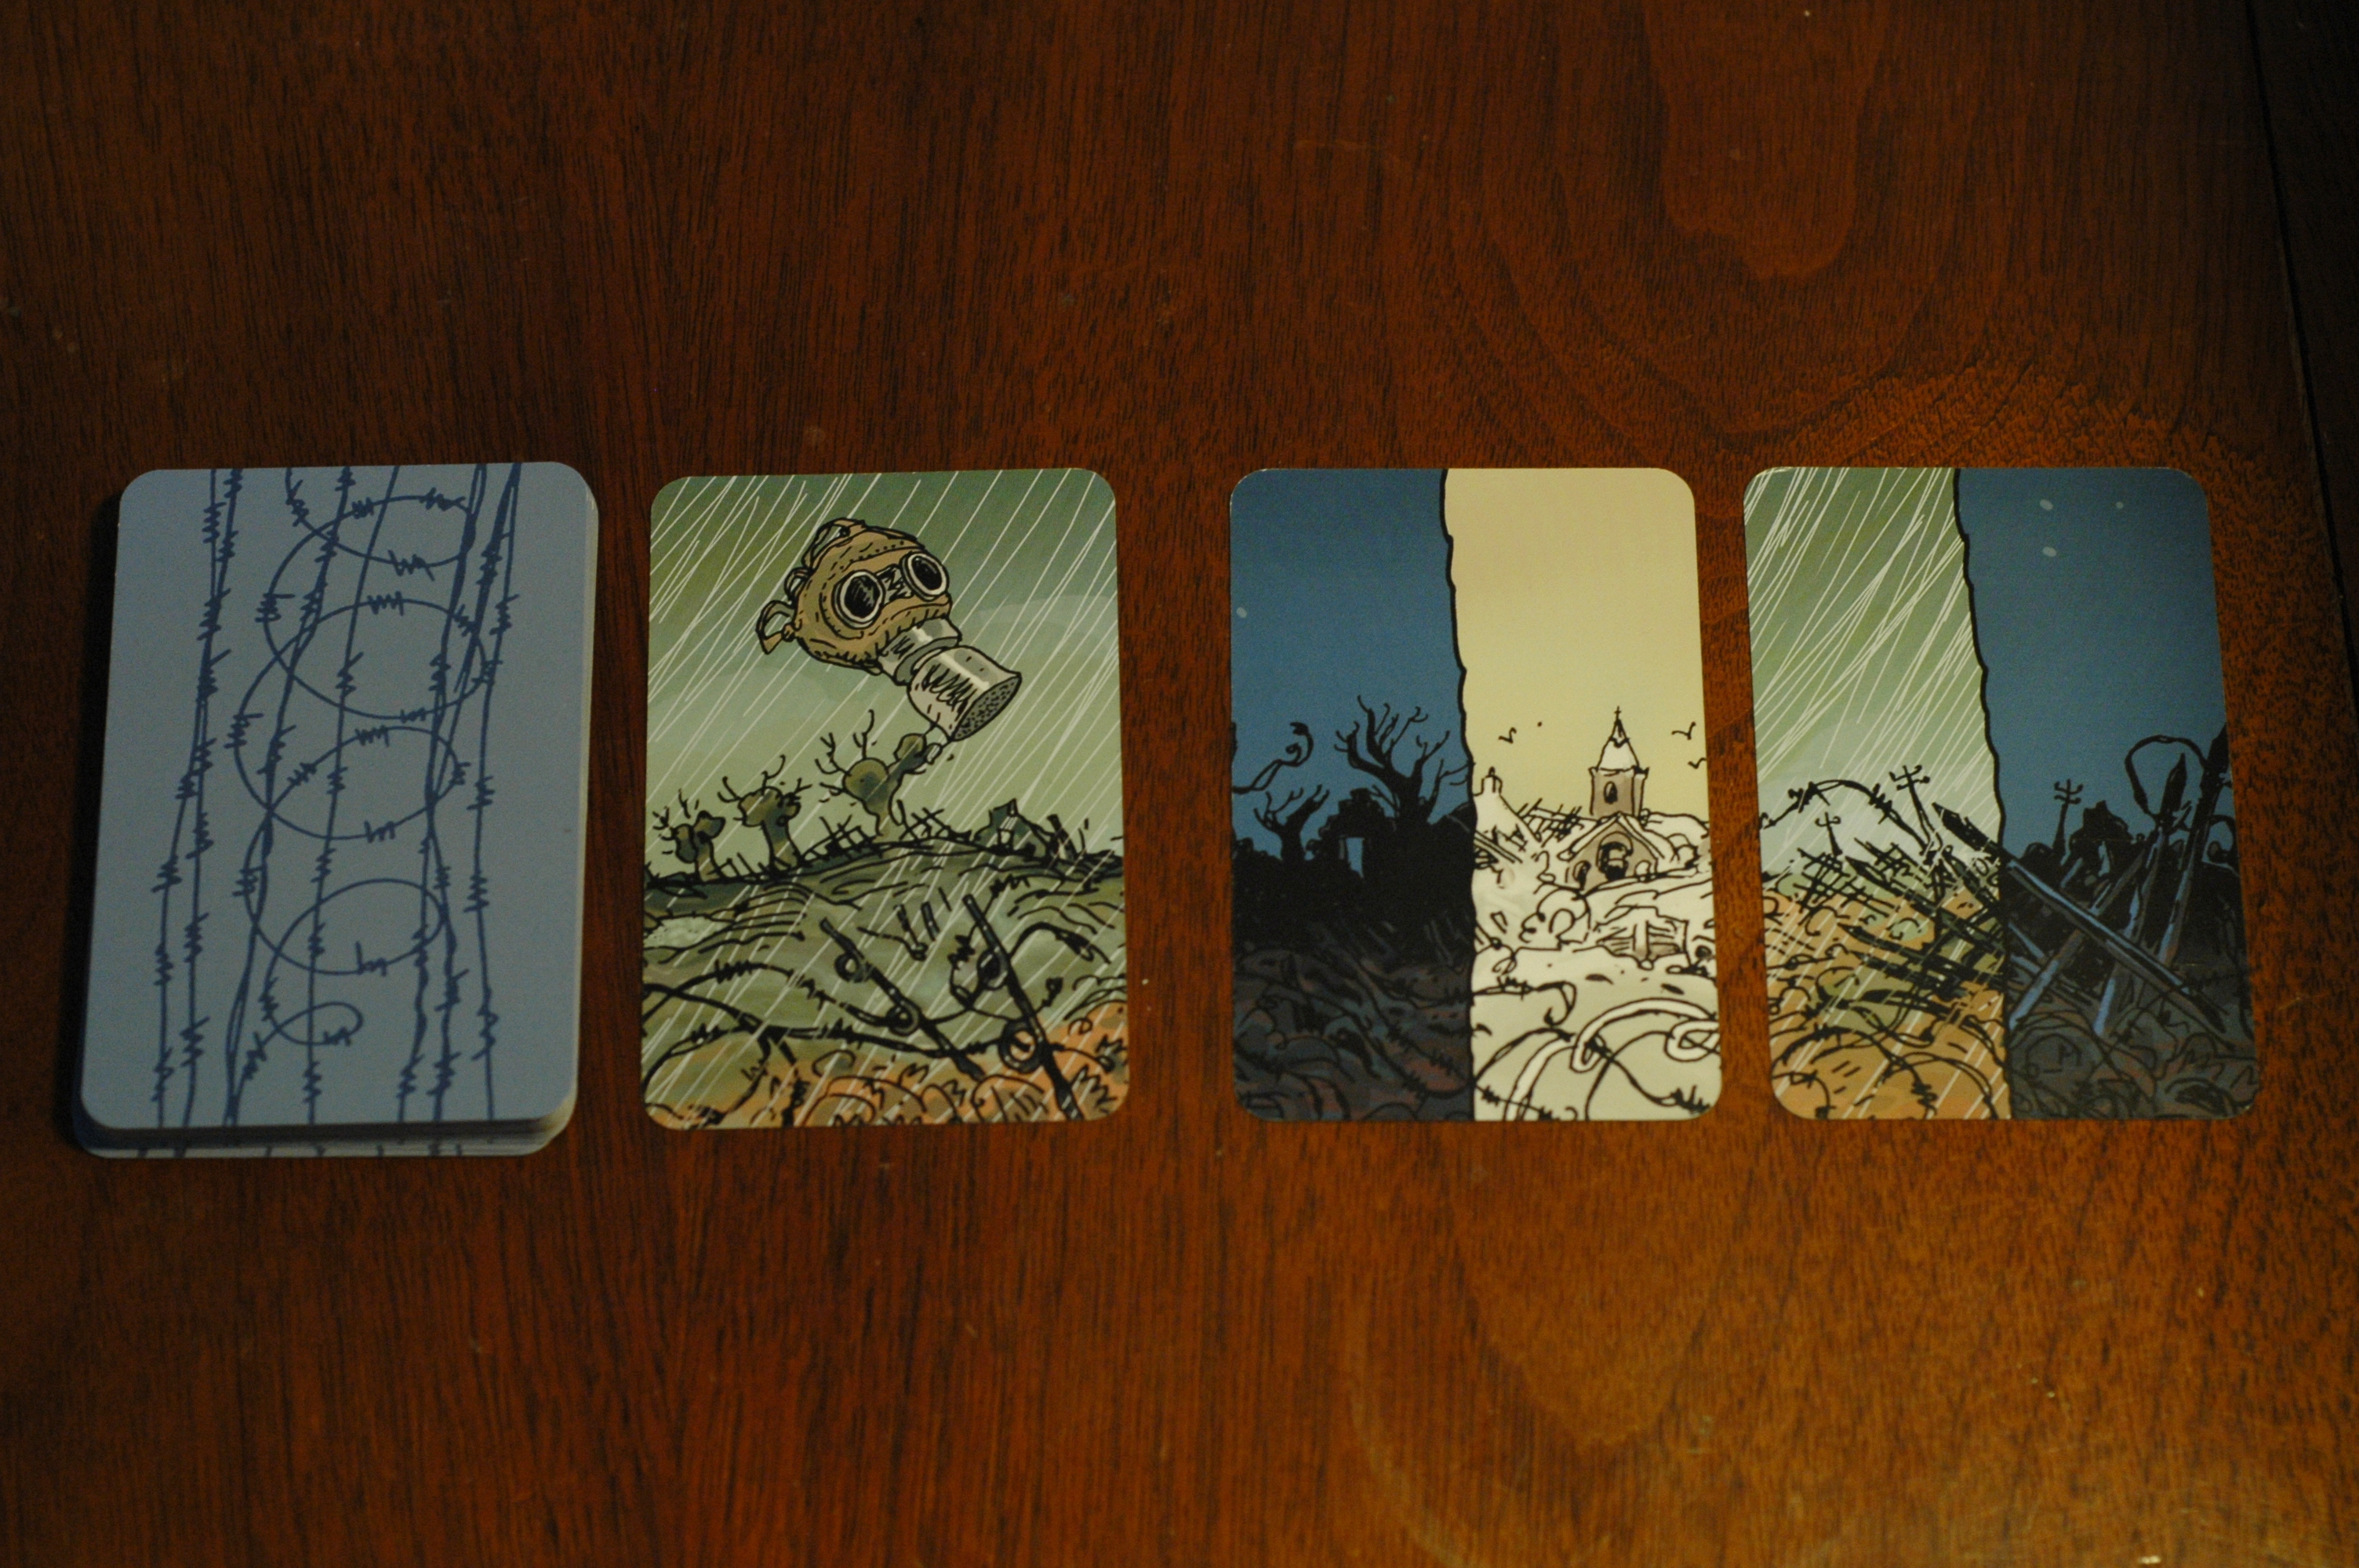 There are two night, two rain, one snow, and one gas mask symbols in this sample tableau (the deck is to the far left). If the players play another card with night or rain into the tableau, they will fail the mission. Photo used with permission of the author and used for purposes of critique.